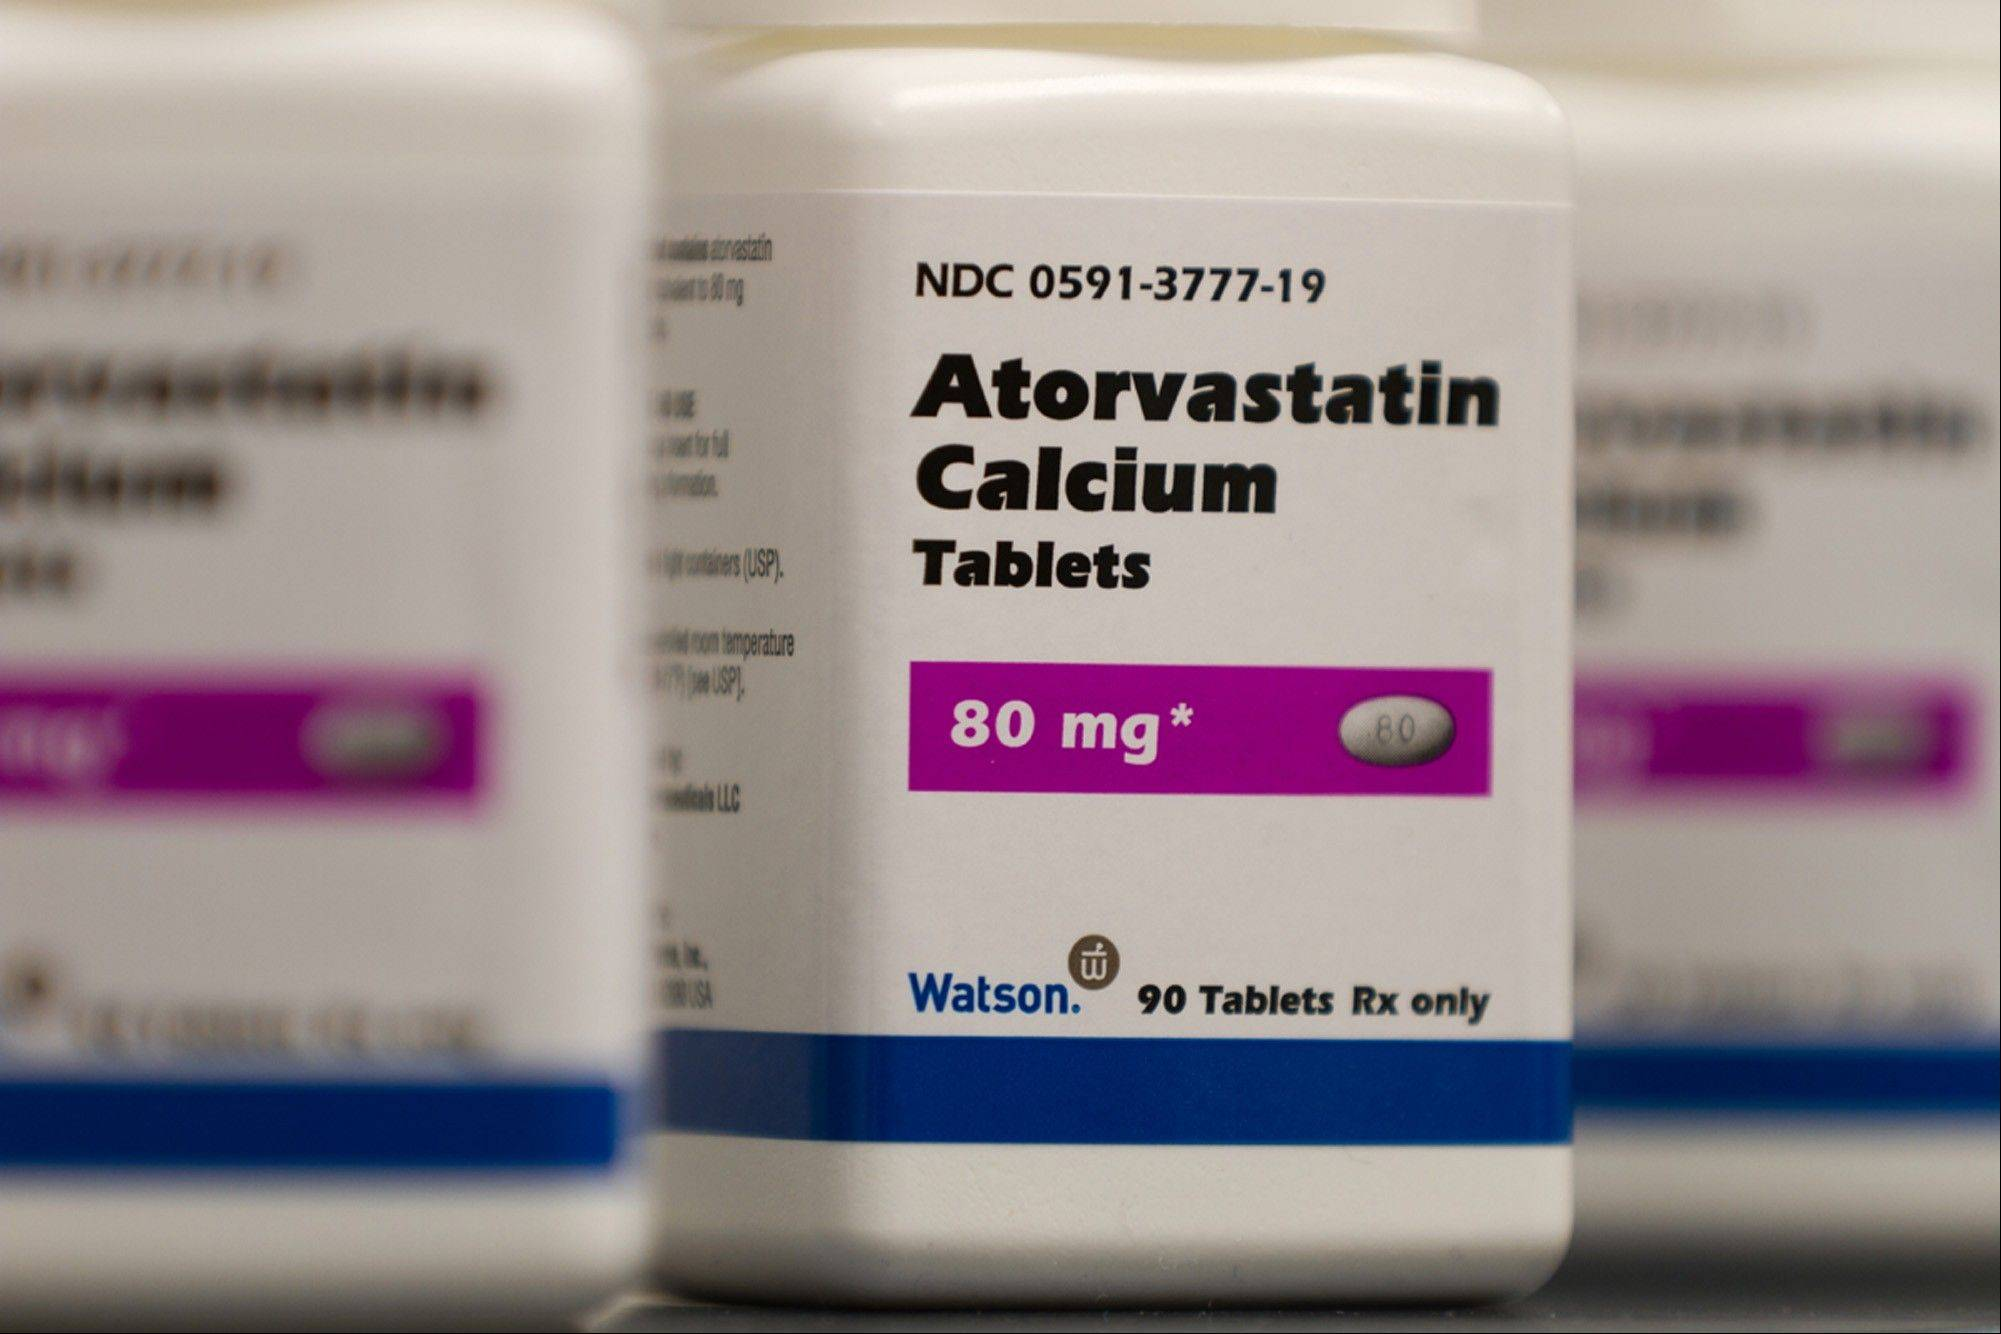 Atorvastatin Calcium tablets, a generic form of Lipitor, is being sold under a deal with Pfizer. The nation's first new guidelines in a decade for preventing heart attacks and strokes call for twice as many Americans -- one-third of all adults -- to consider taking cholesterol-lowering statin drugs.